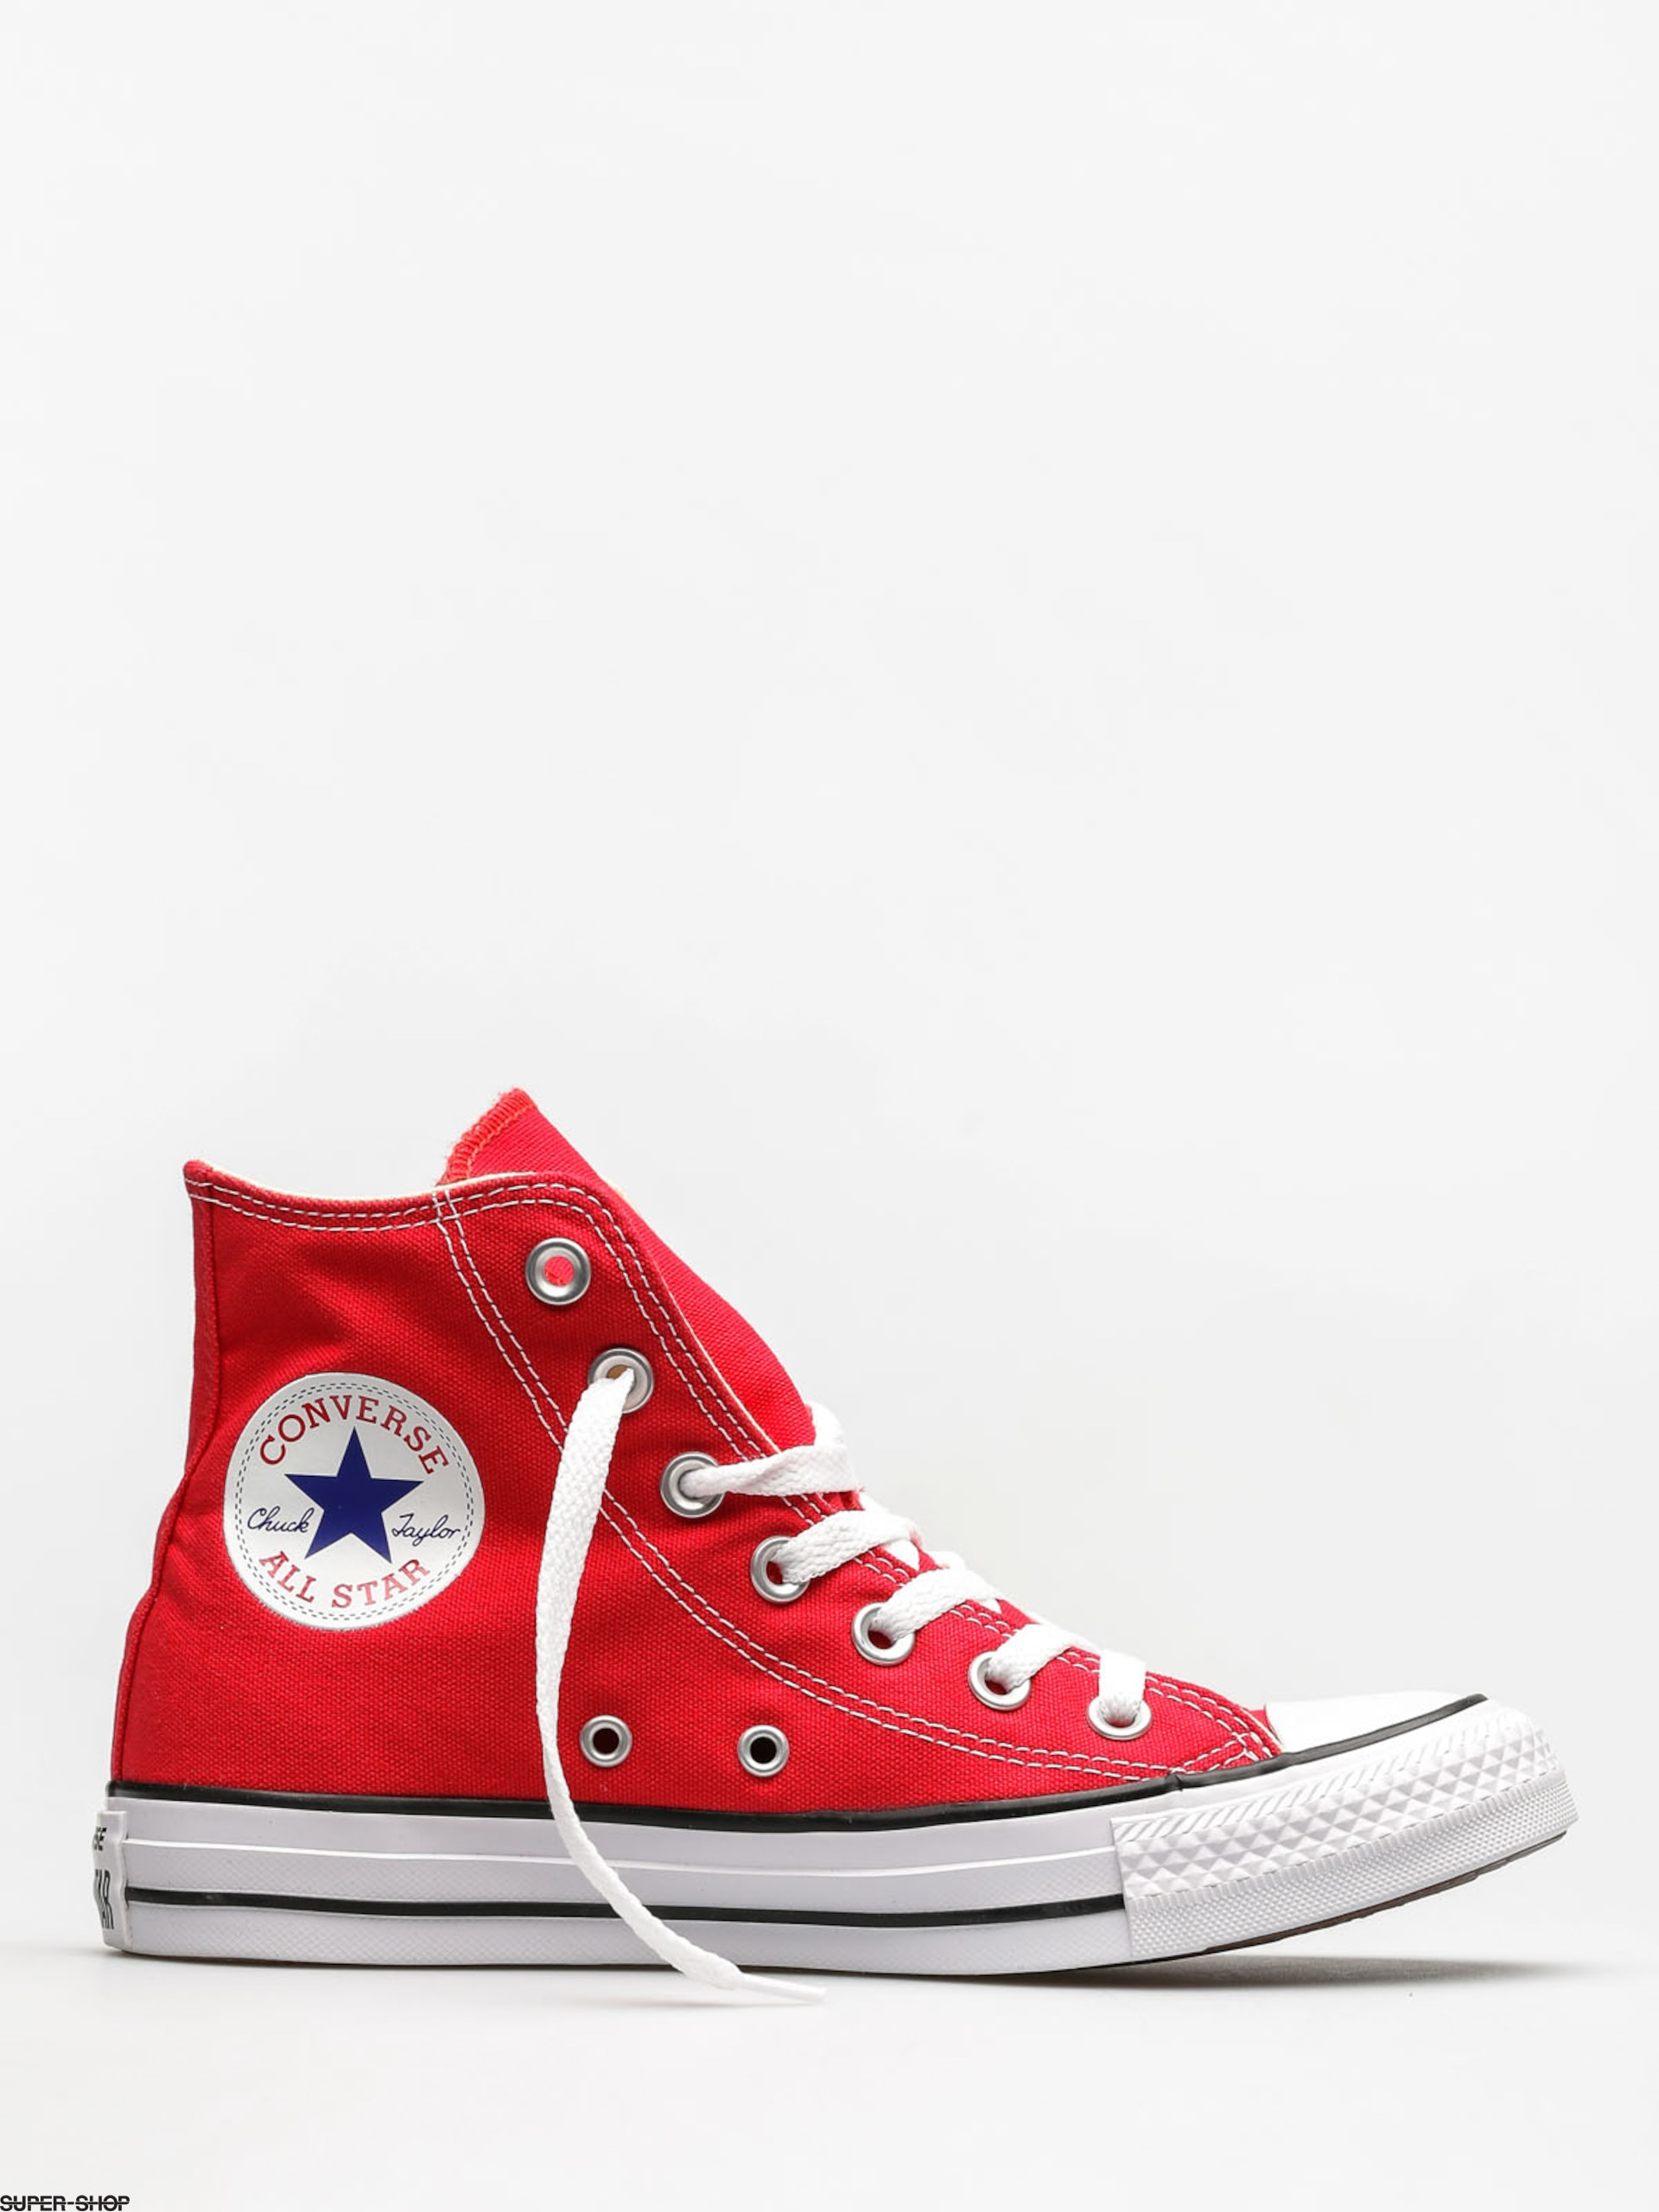 29b7cedc 871217-w1920-converse-chucks-chuck-taylor-all-star-hi-red.jpg